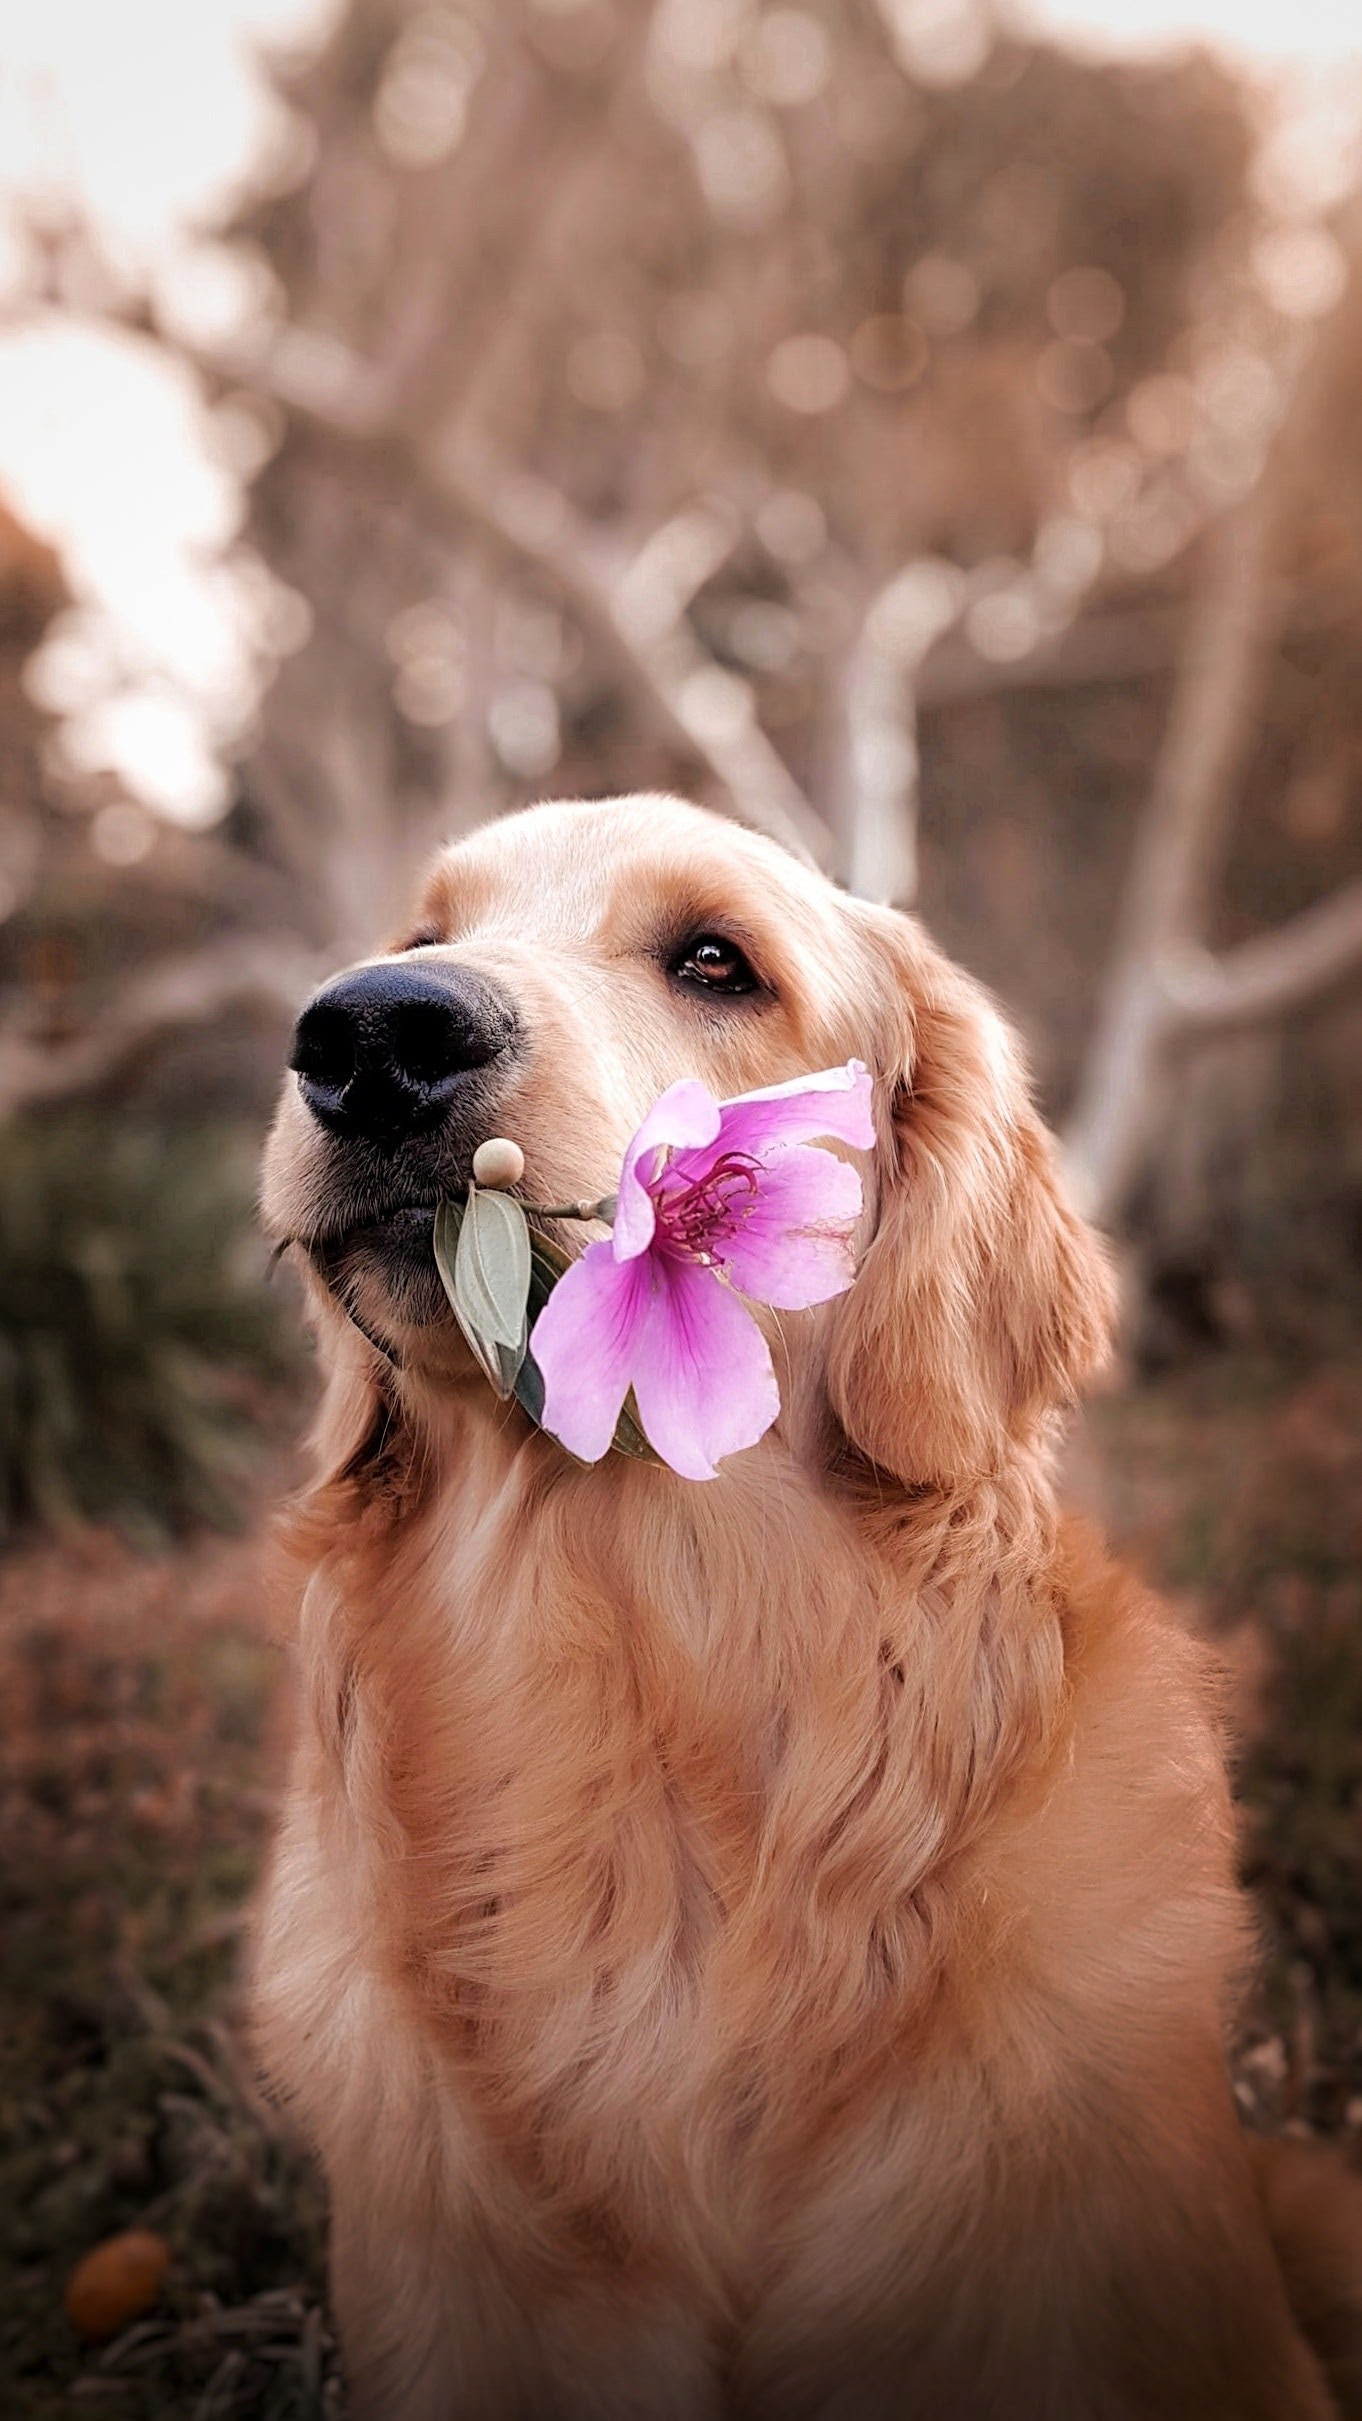 Homeward Bound Animal Care, LLC  Lakes Region, NH  Dog Safety for Mother's Day